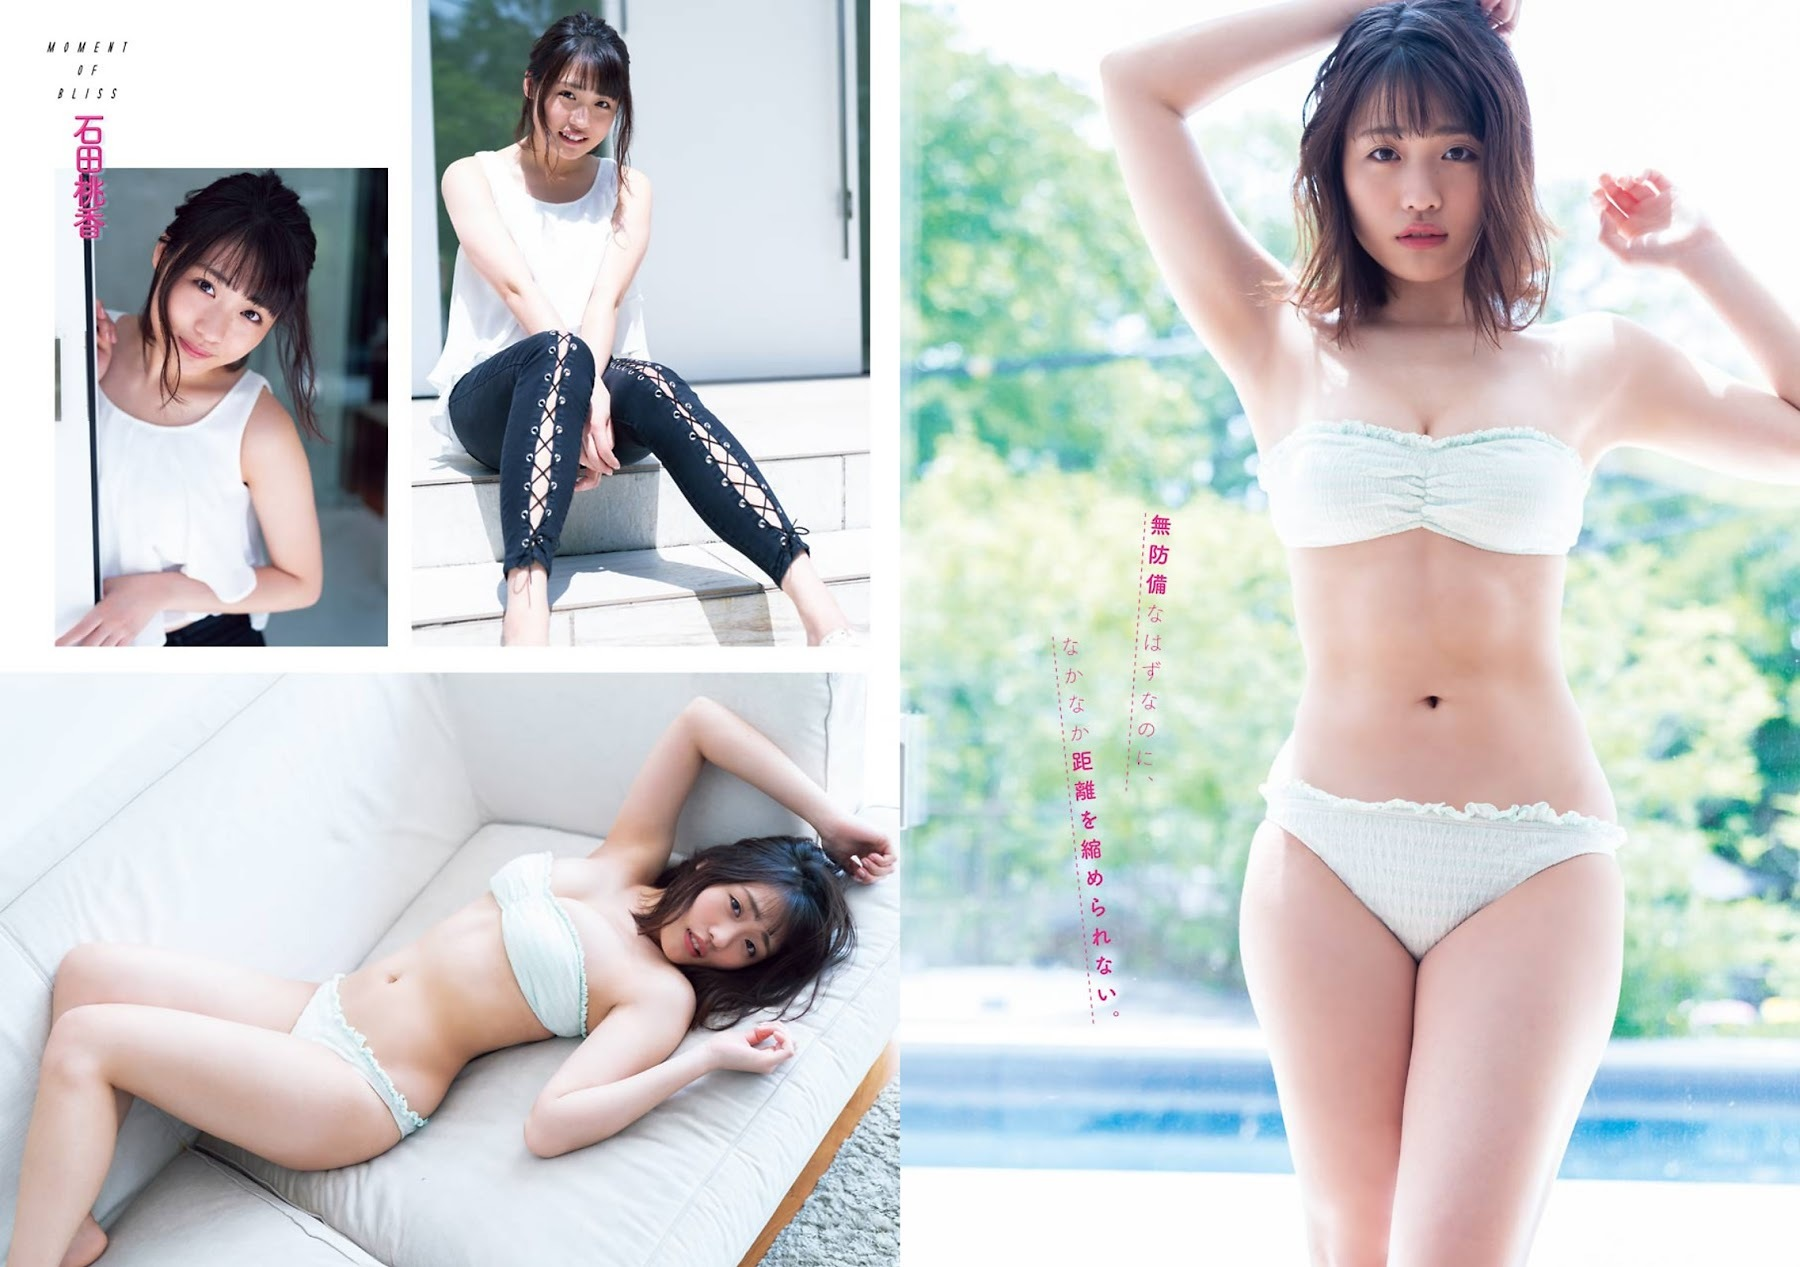 Momoka Ishida dominates the gravure industry with her versatile and beautiful body006